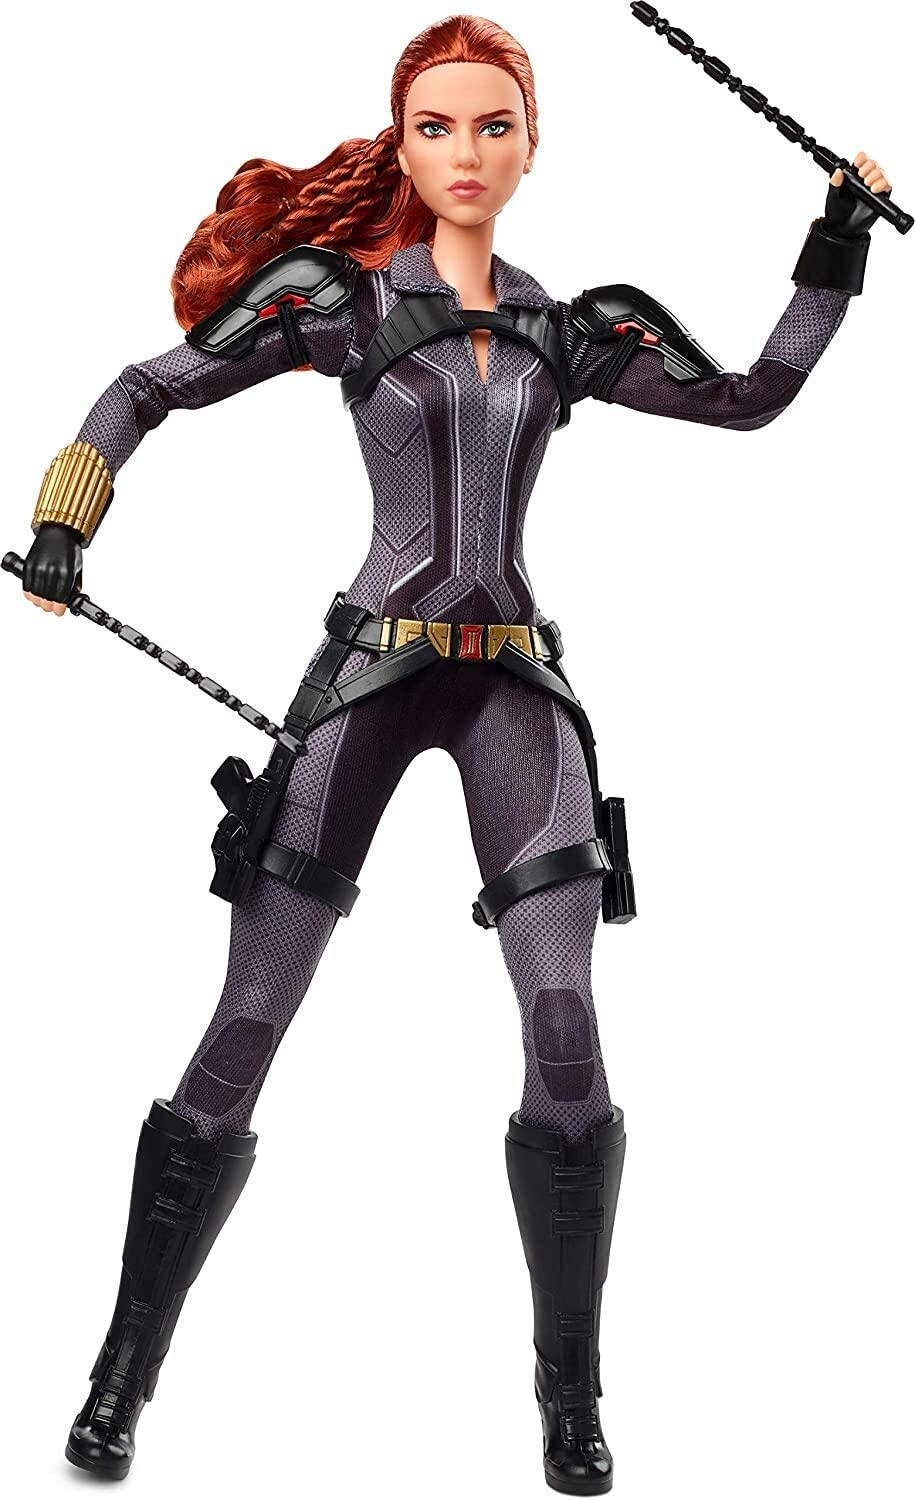 Barbie Marvel Studios' Black Widow Doll, 11.5-in, Poseable with Red Multi